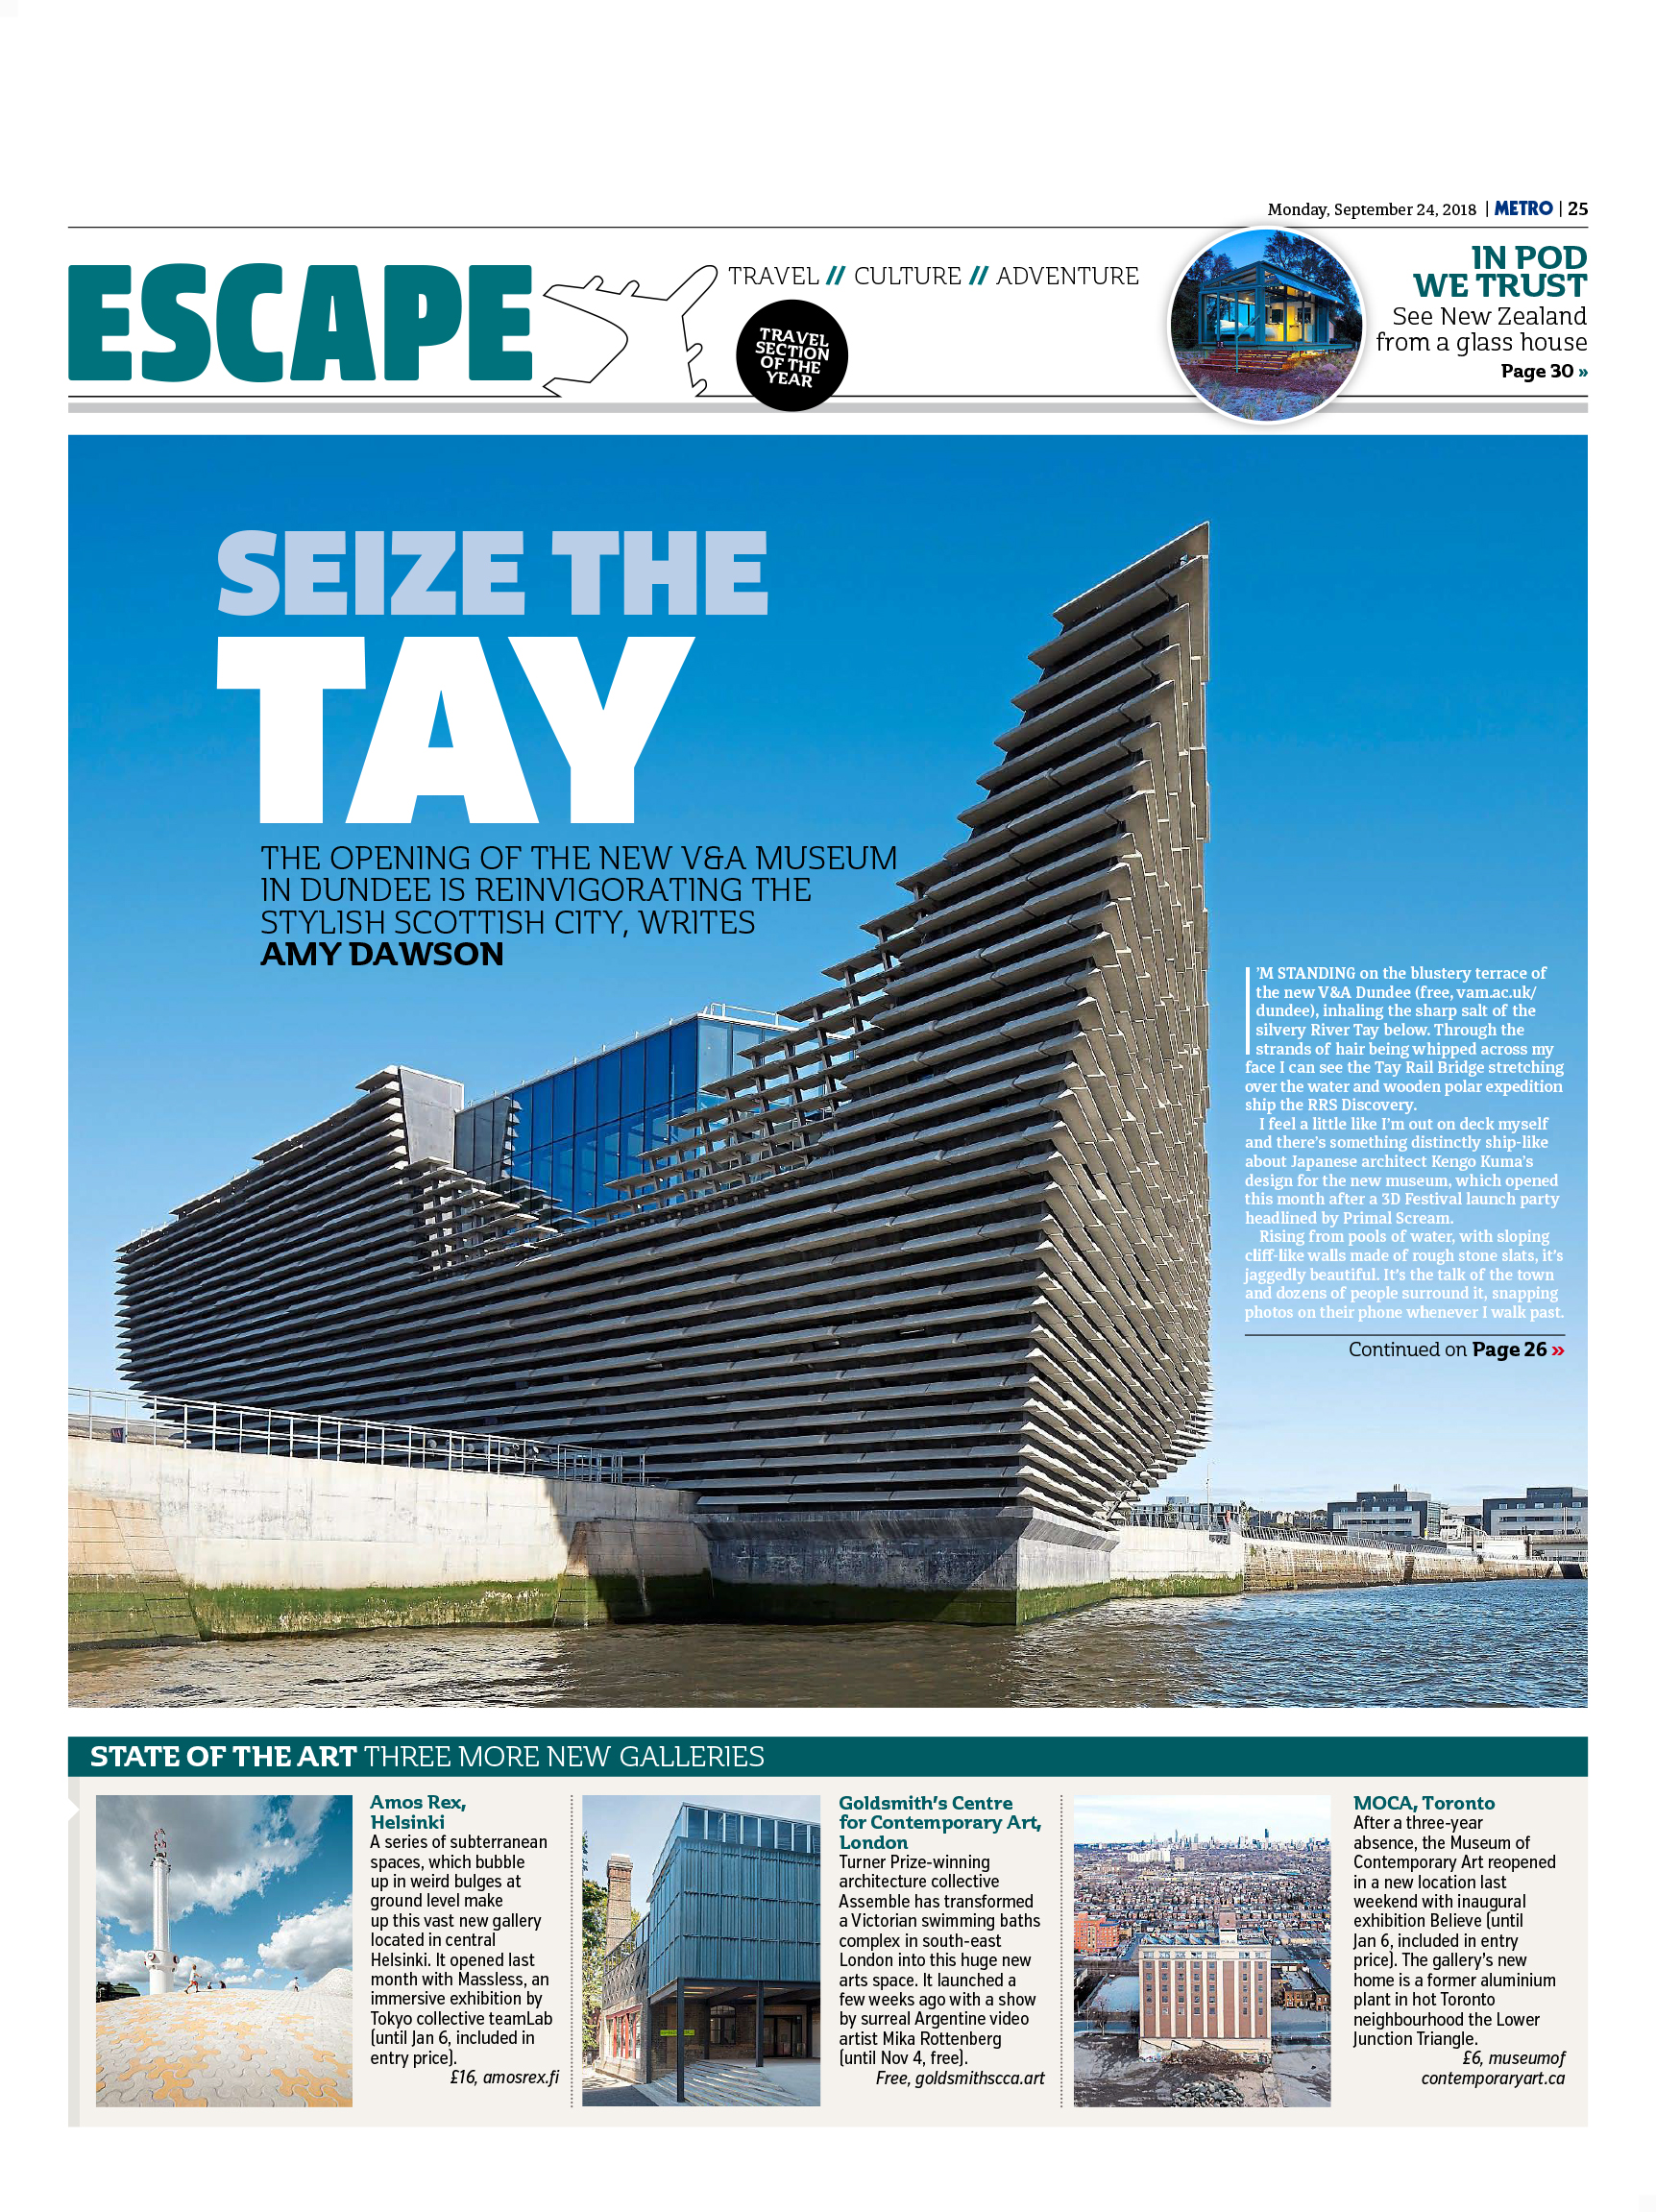 Seize the Tay (Metro, 24th September 2018)